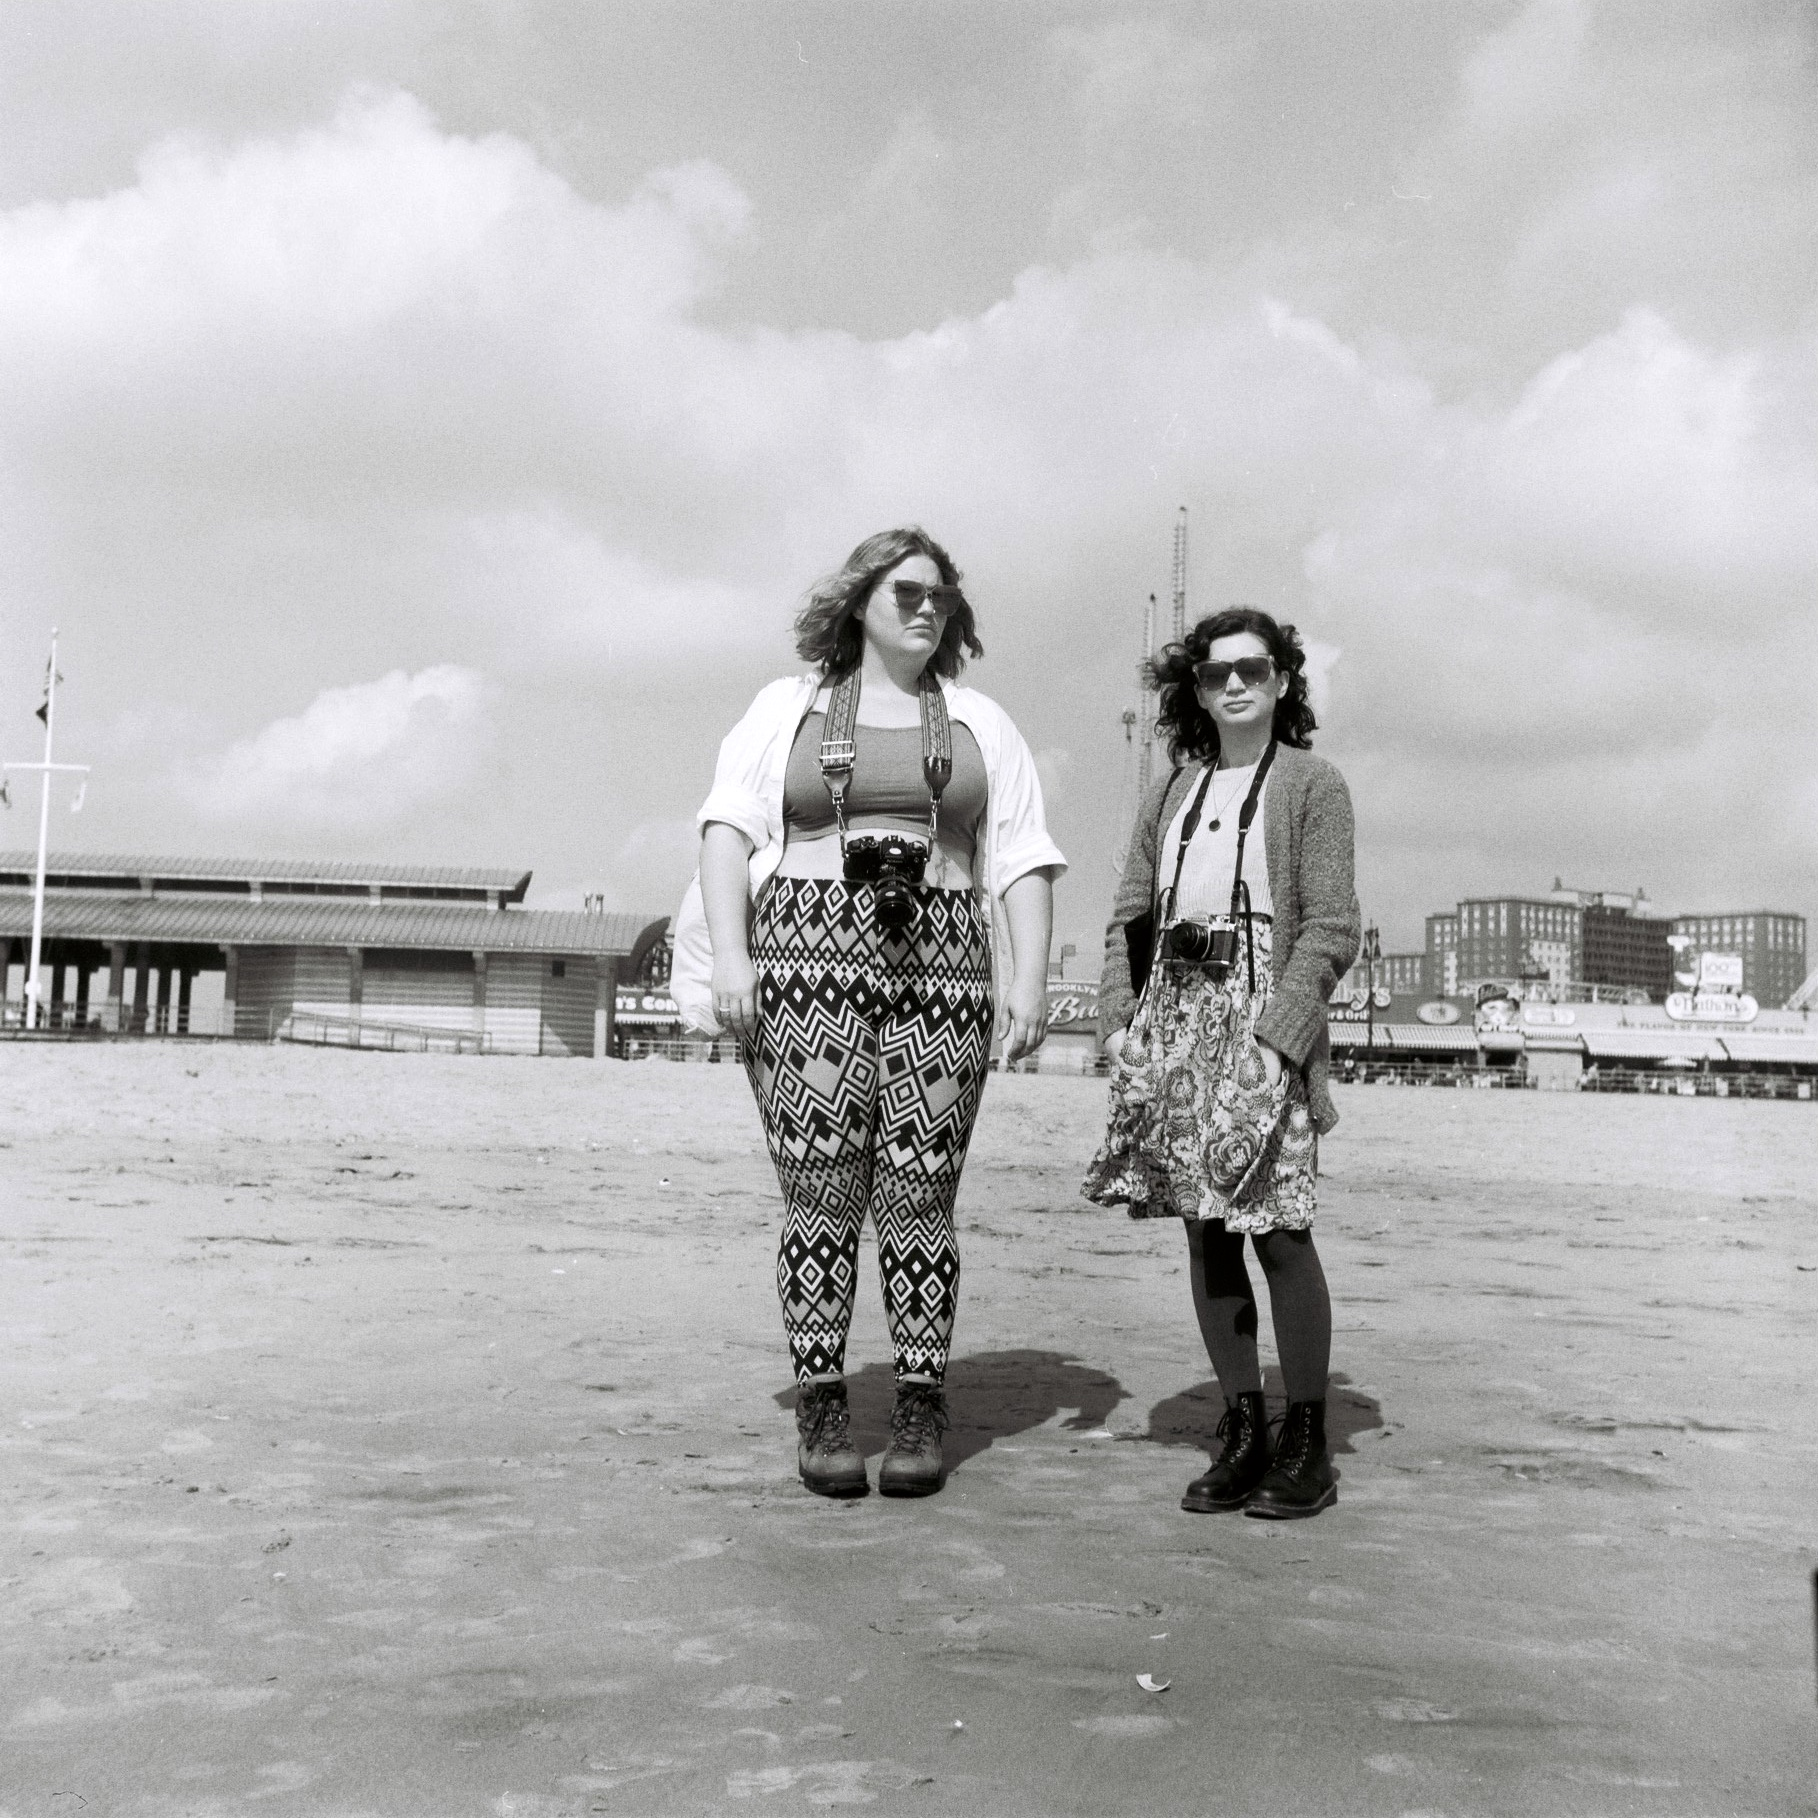 Margaret and Liz at Coney Island